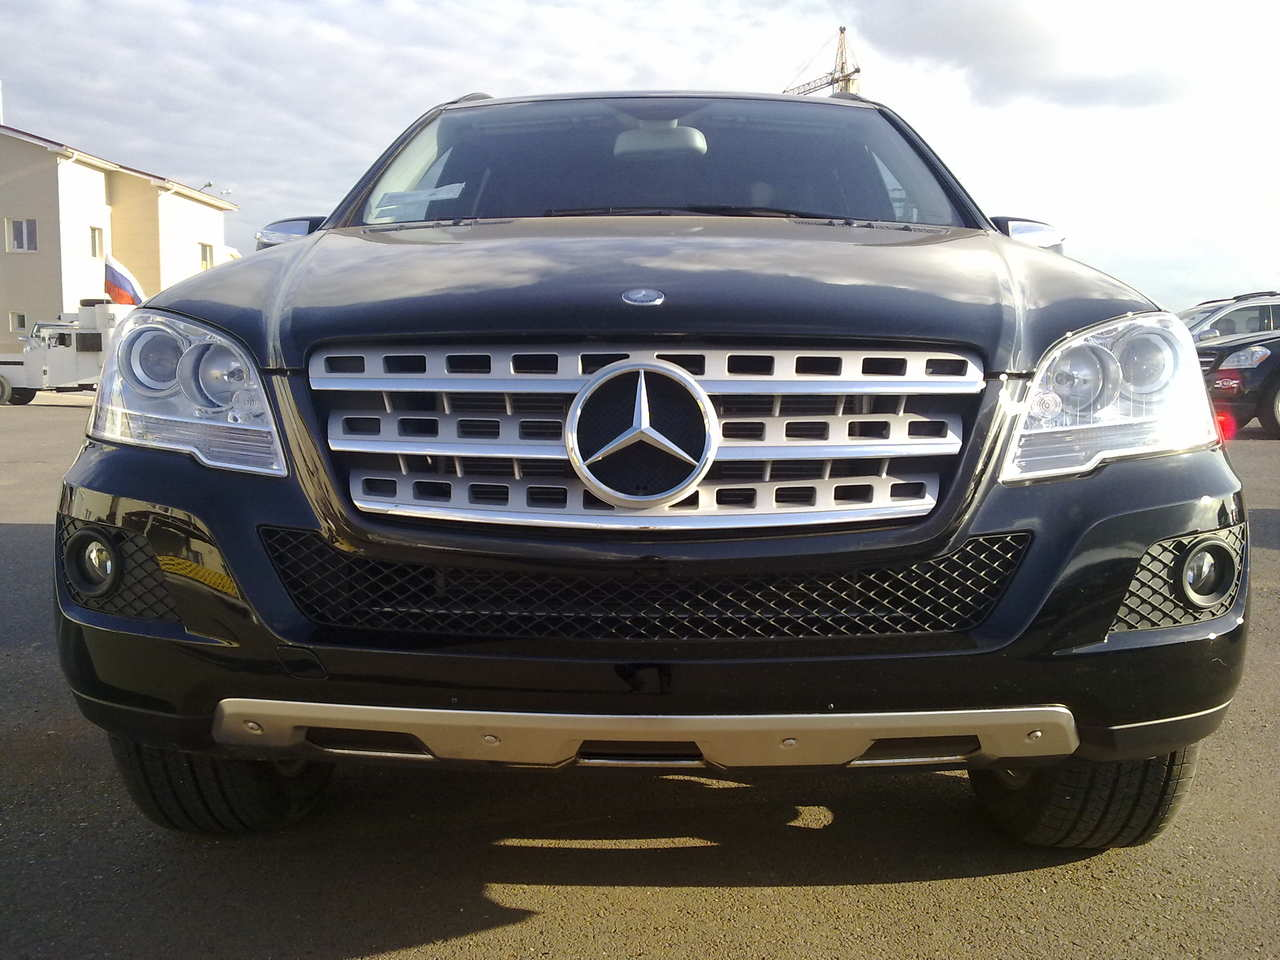 2008 mercedes benz ml class pictures gasoline for Mercedes benz ml 2008 for sale